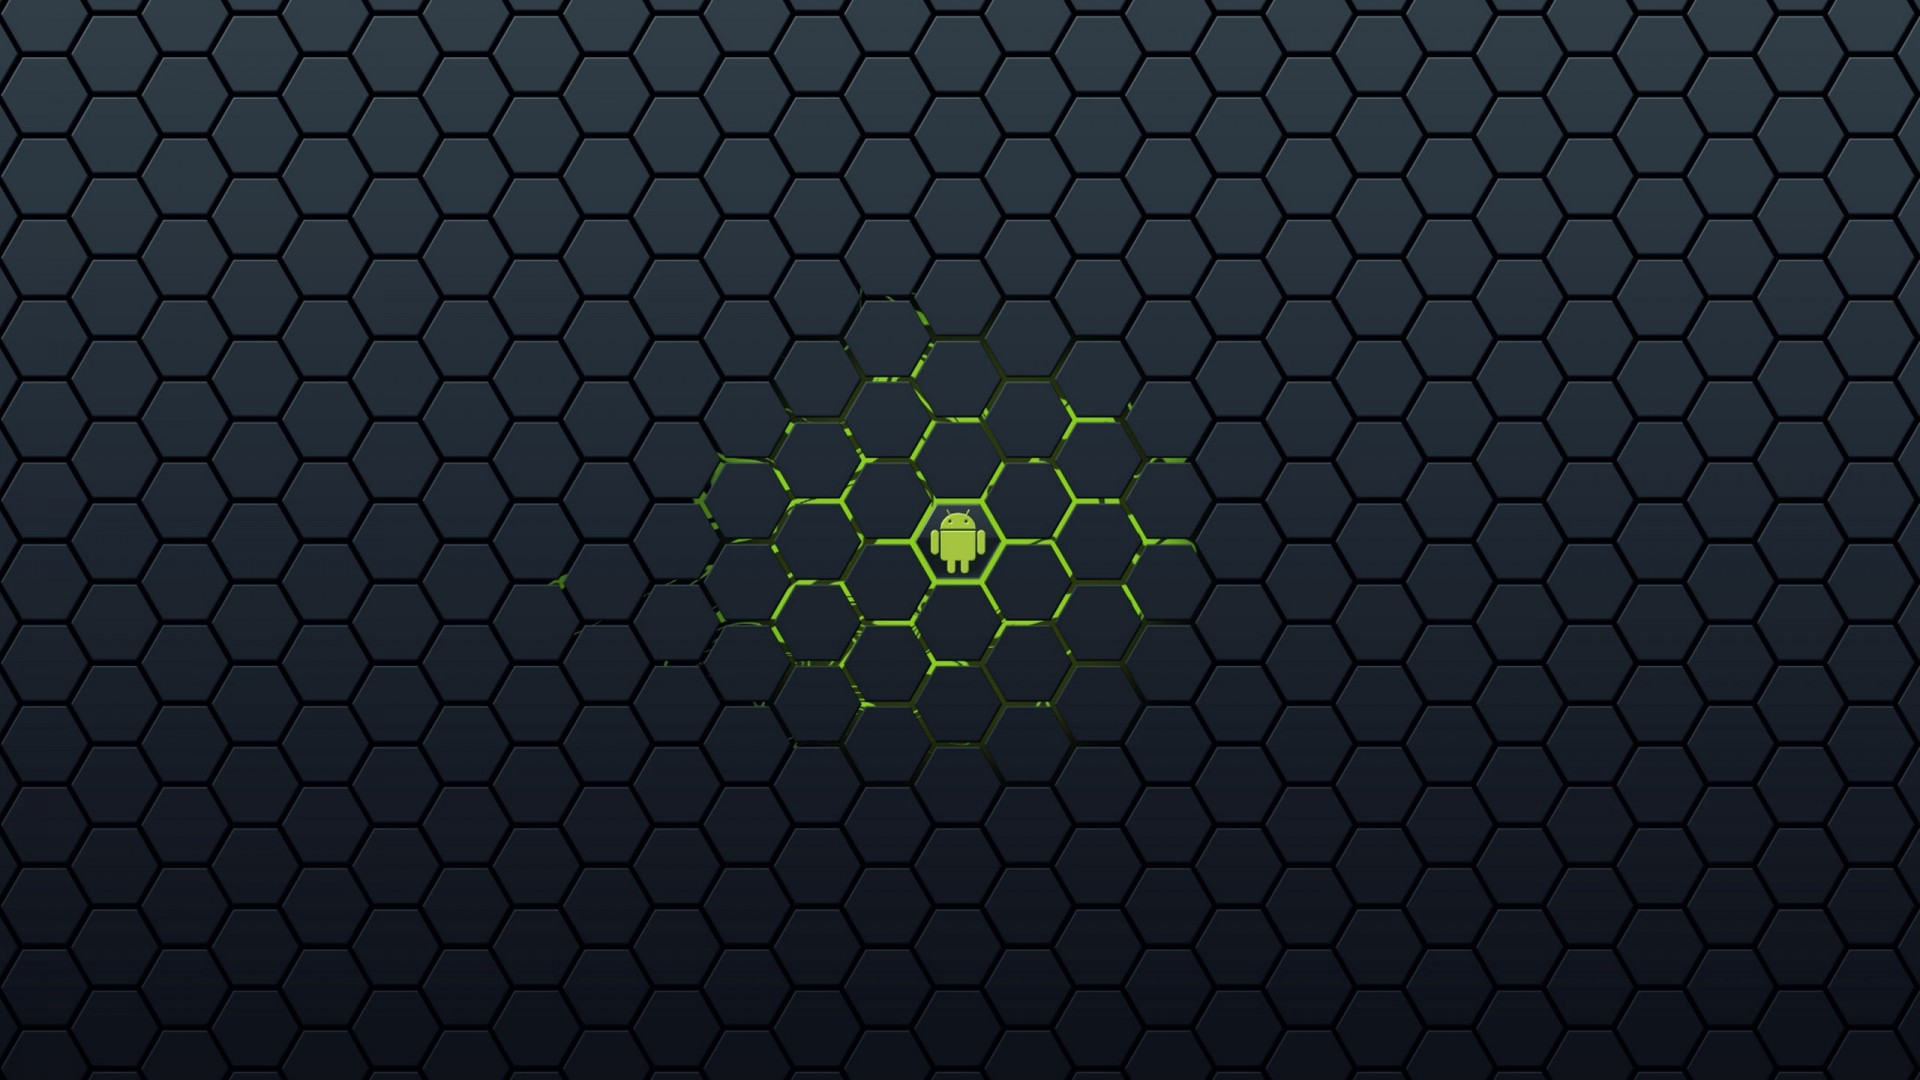 Wallpapers For Android Tablet (59 Wallpapers)